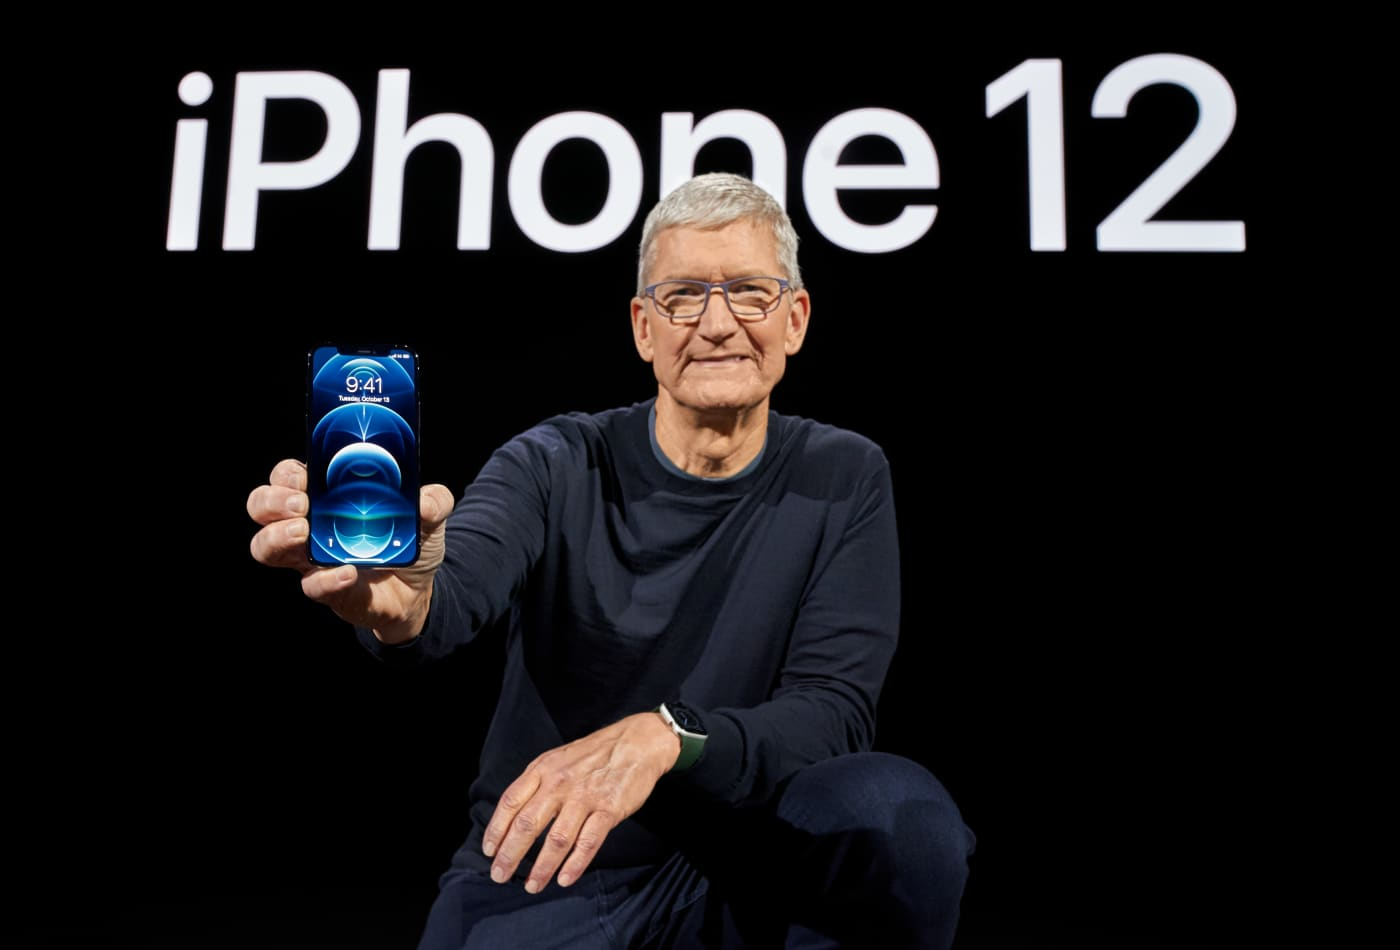 Here's everything Apple just announced at its iPhone 12 event